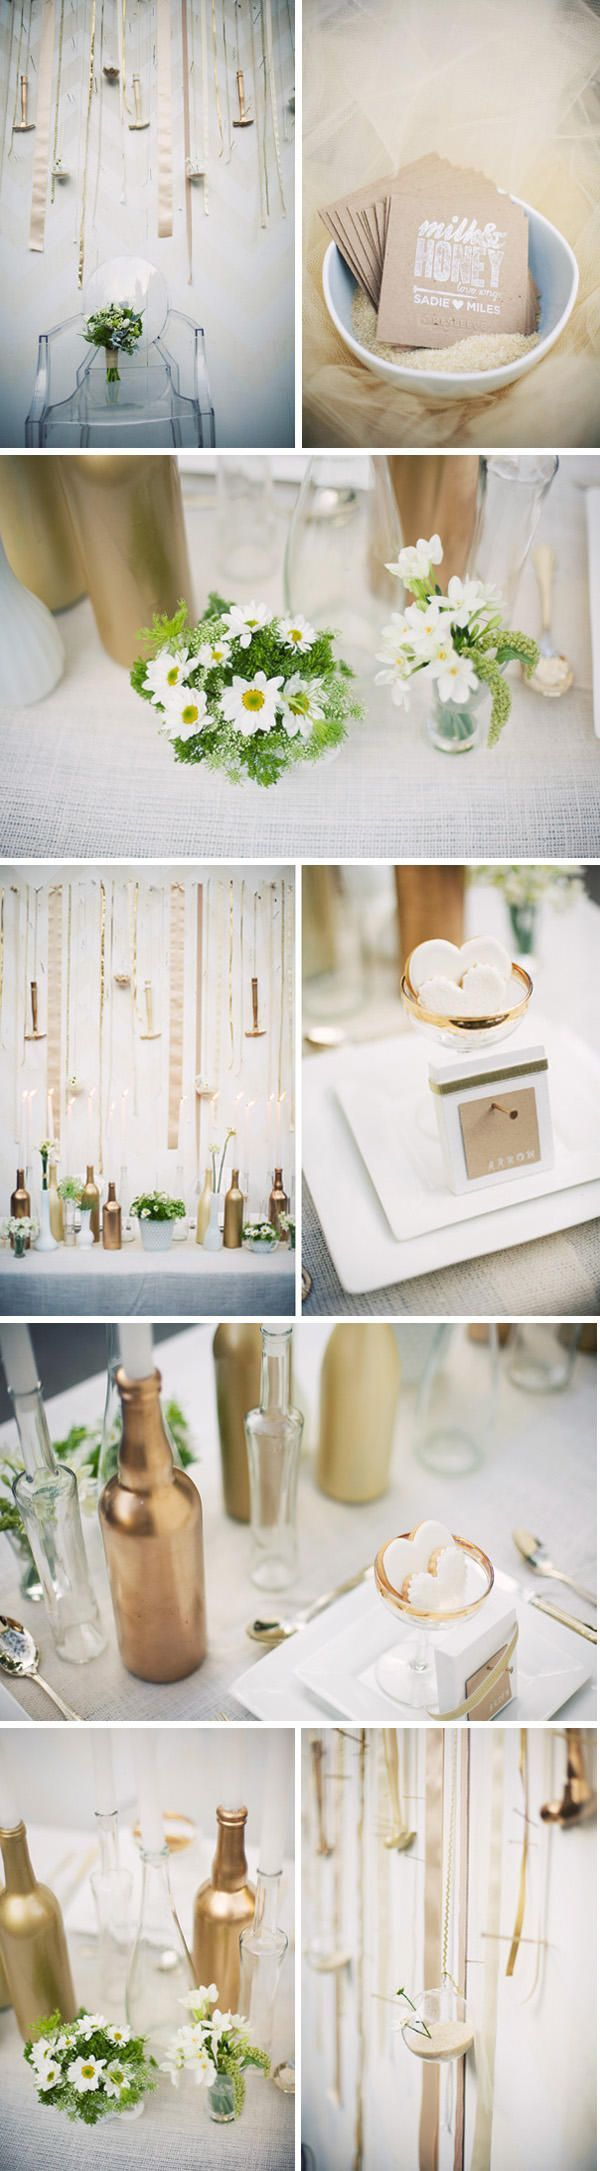 gold wedding vases